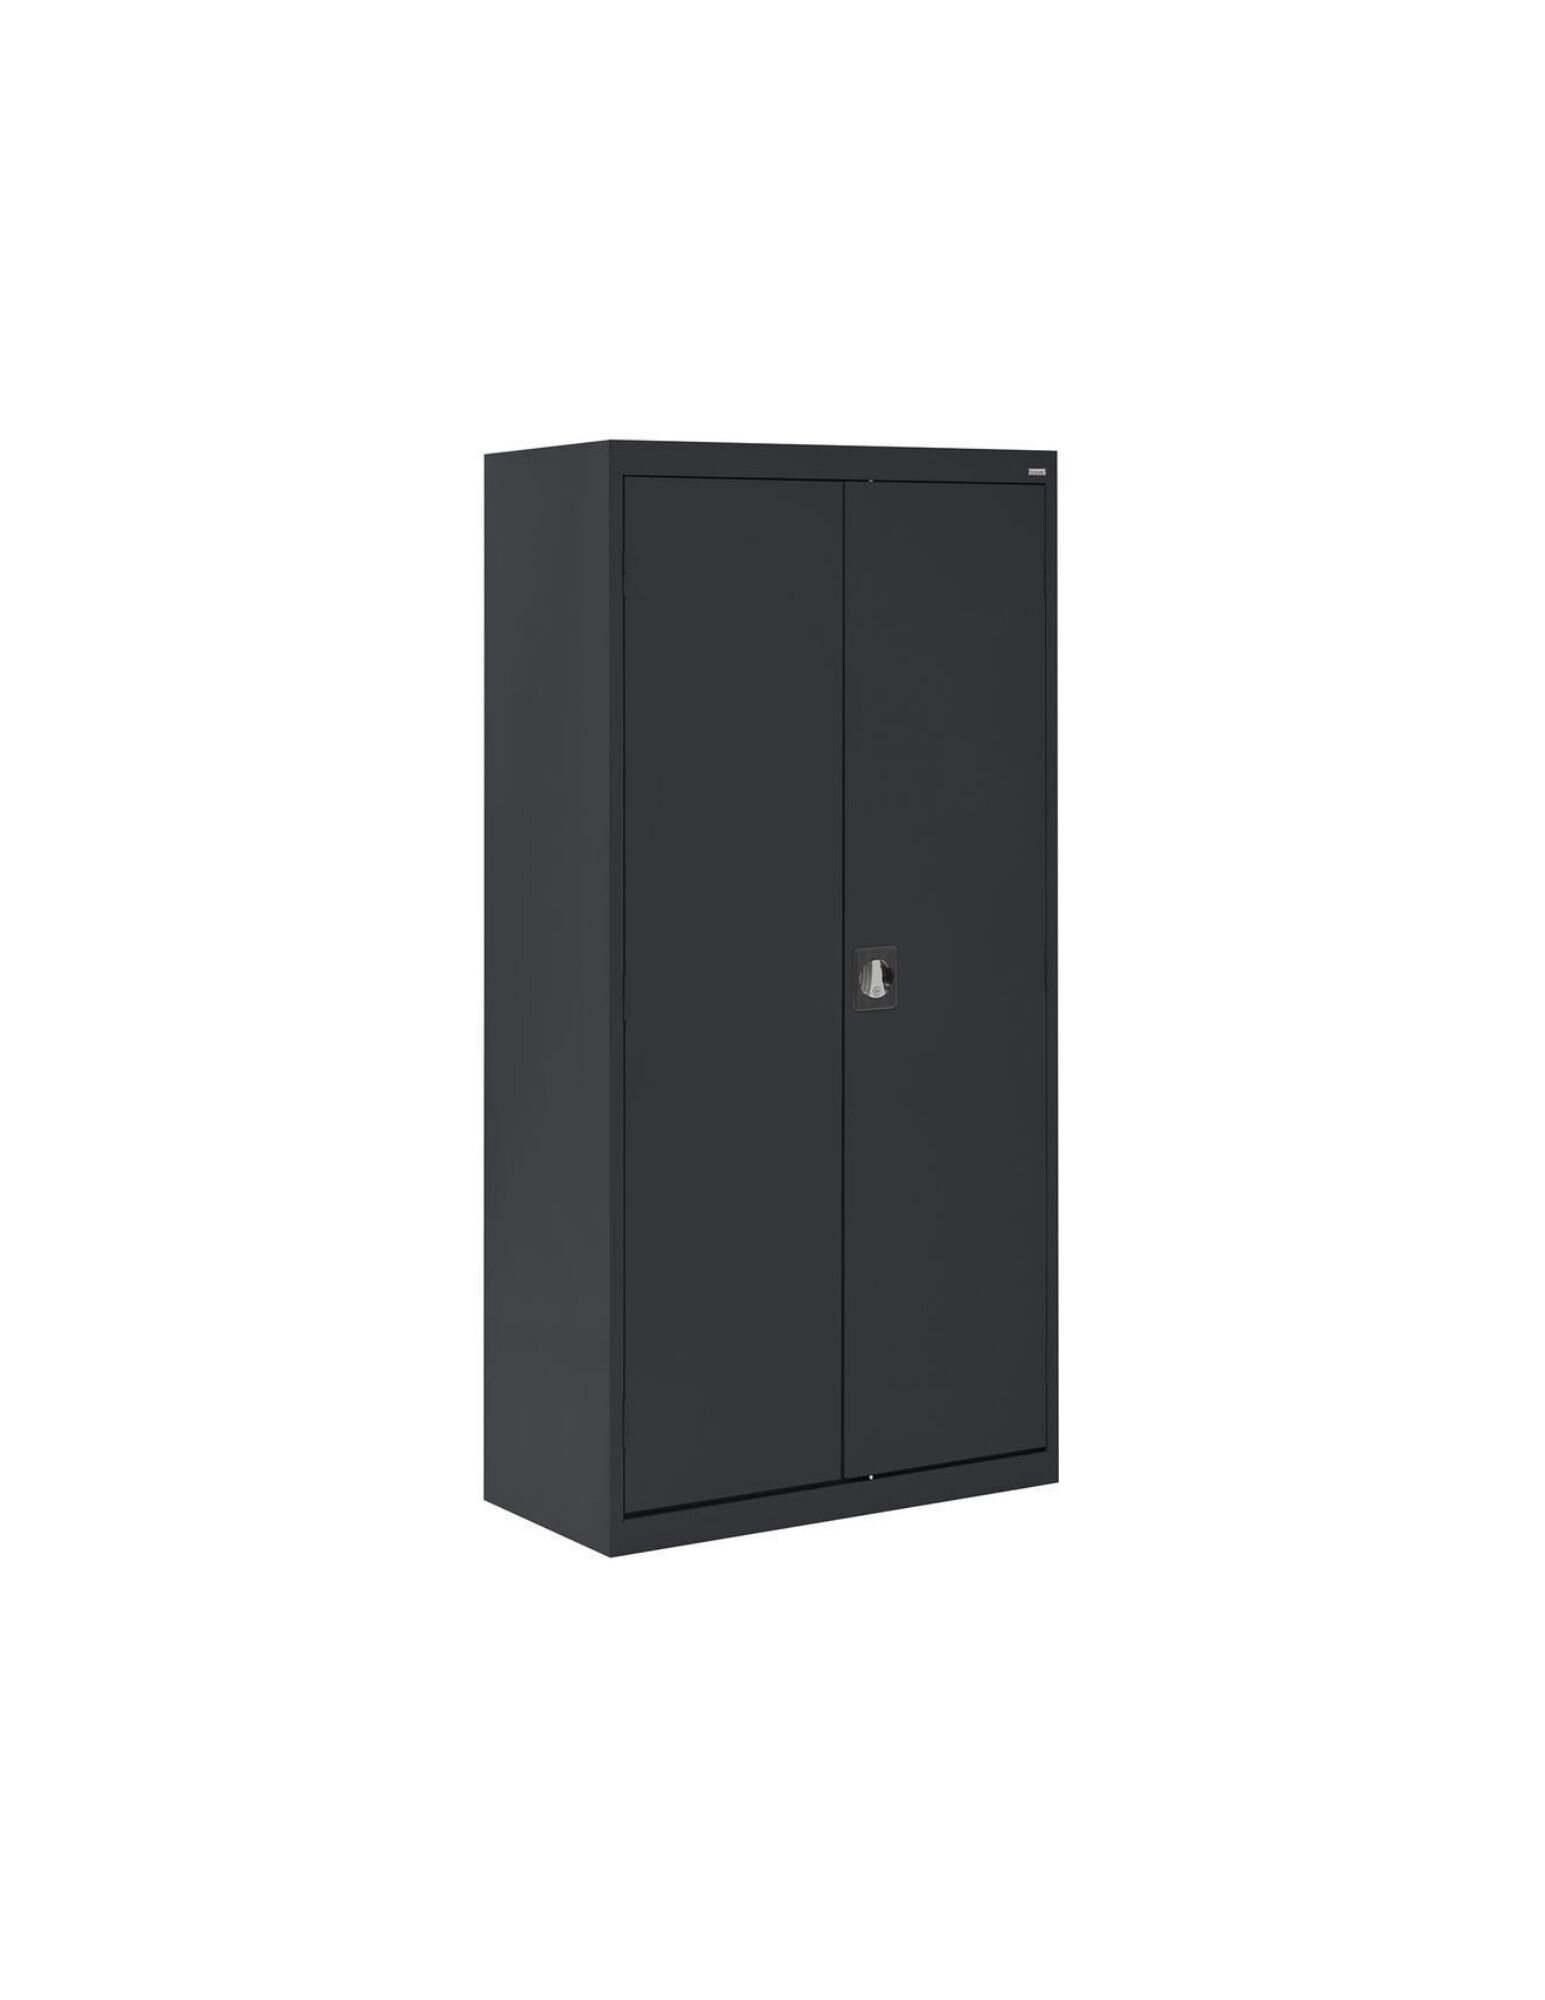 Picture of: Metal Storage Cabinet Dynamic Office Services